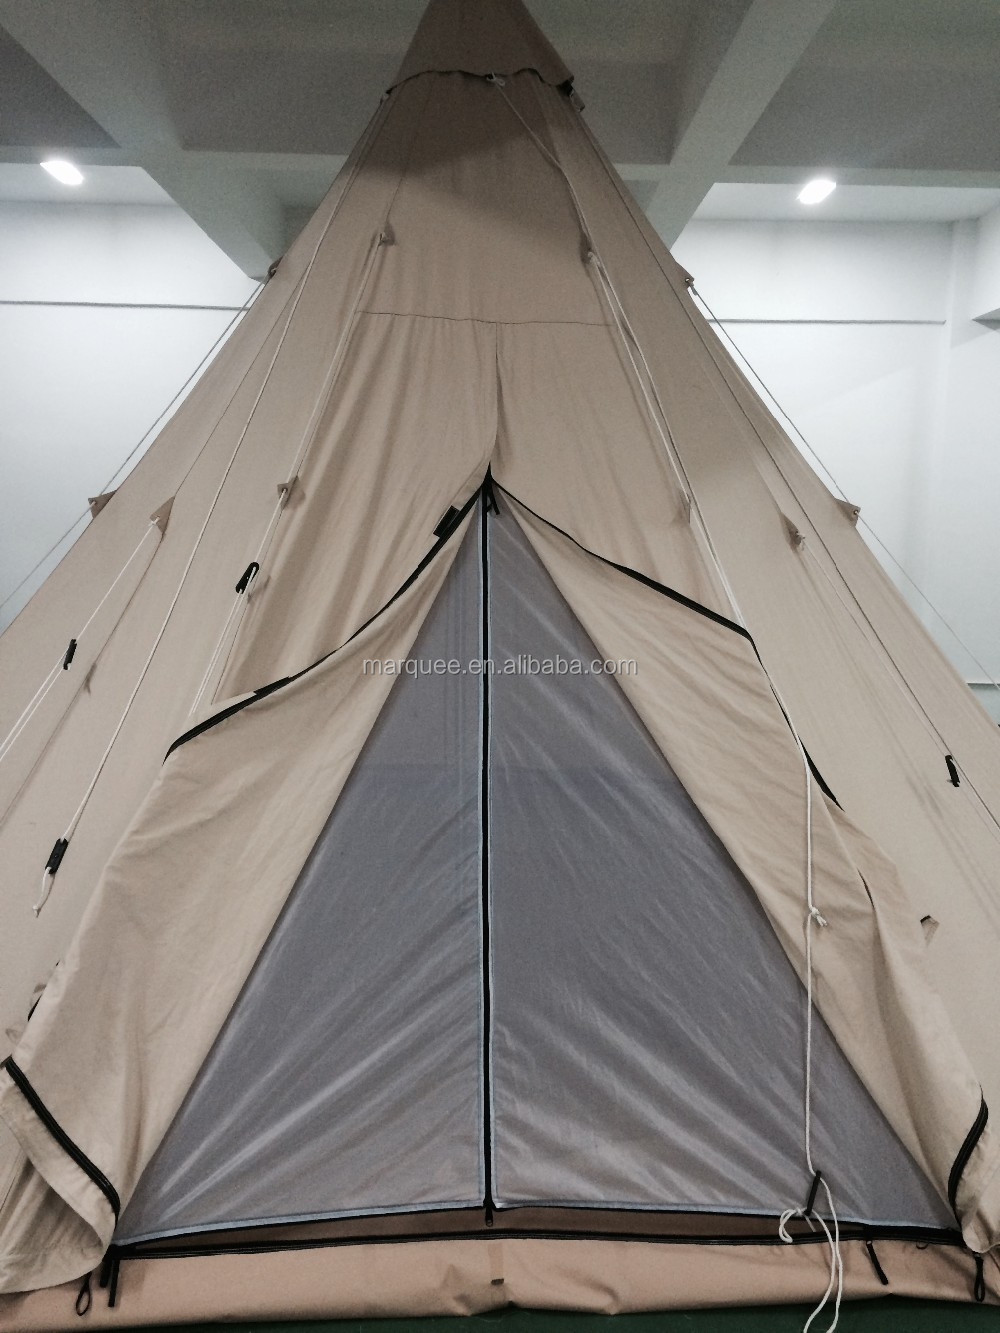 5m Round Tipi Outdoor Tent Teepee Tent 100 Cotton Canvas